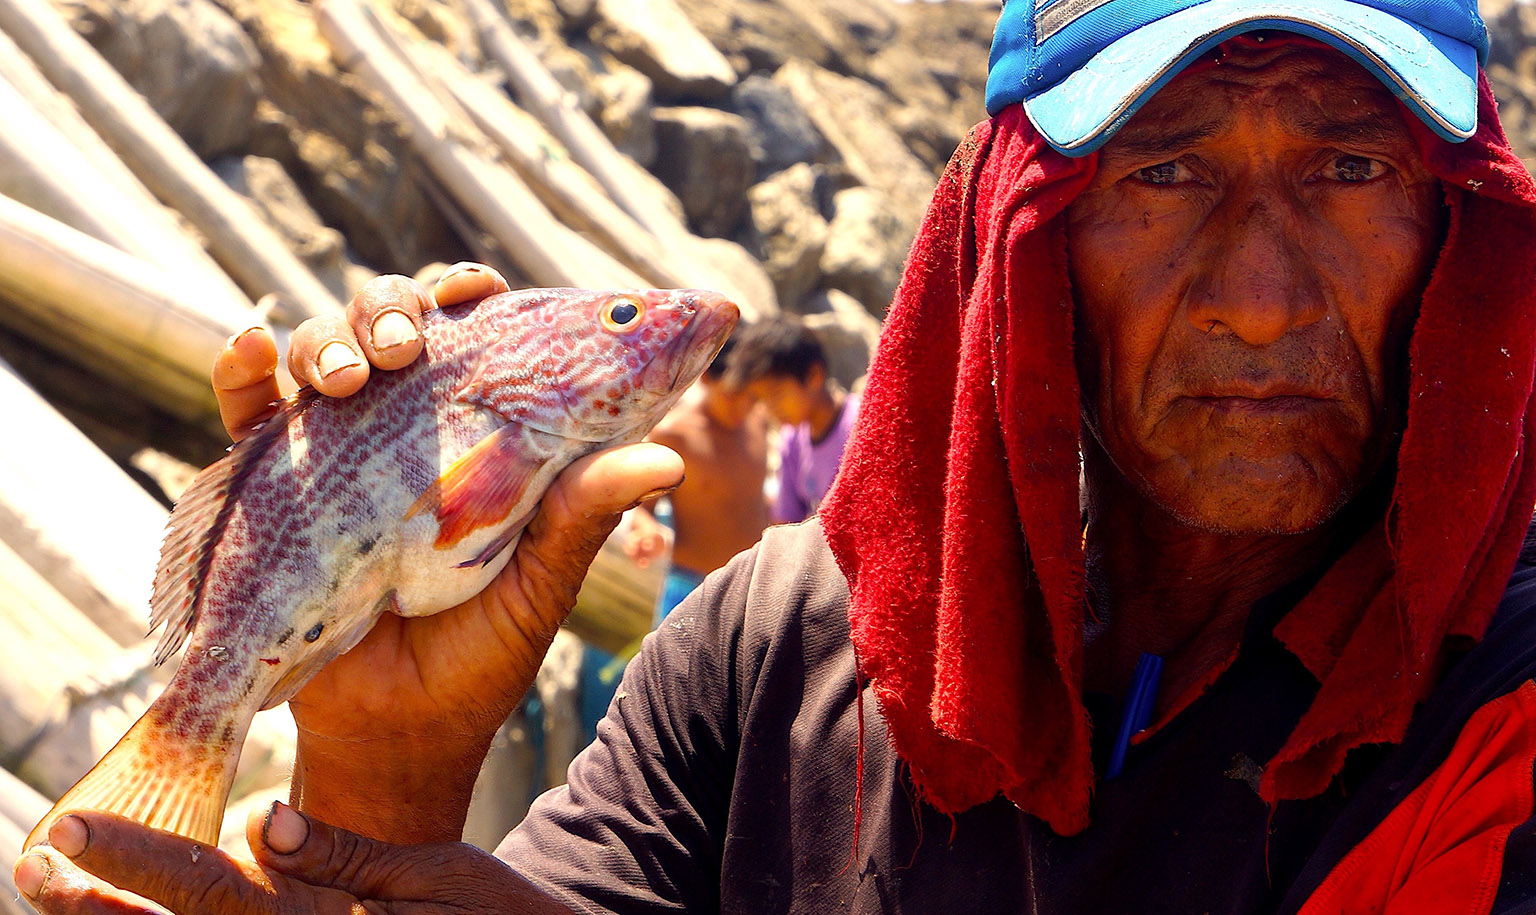 """El Nuro fisherman: """"We cannot expect to have healthy oceans when we most marine species are suffering from overfishing."""" Photo credit: Enrique Ortiz."""